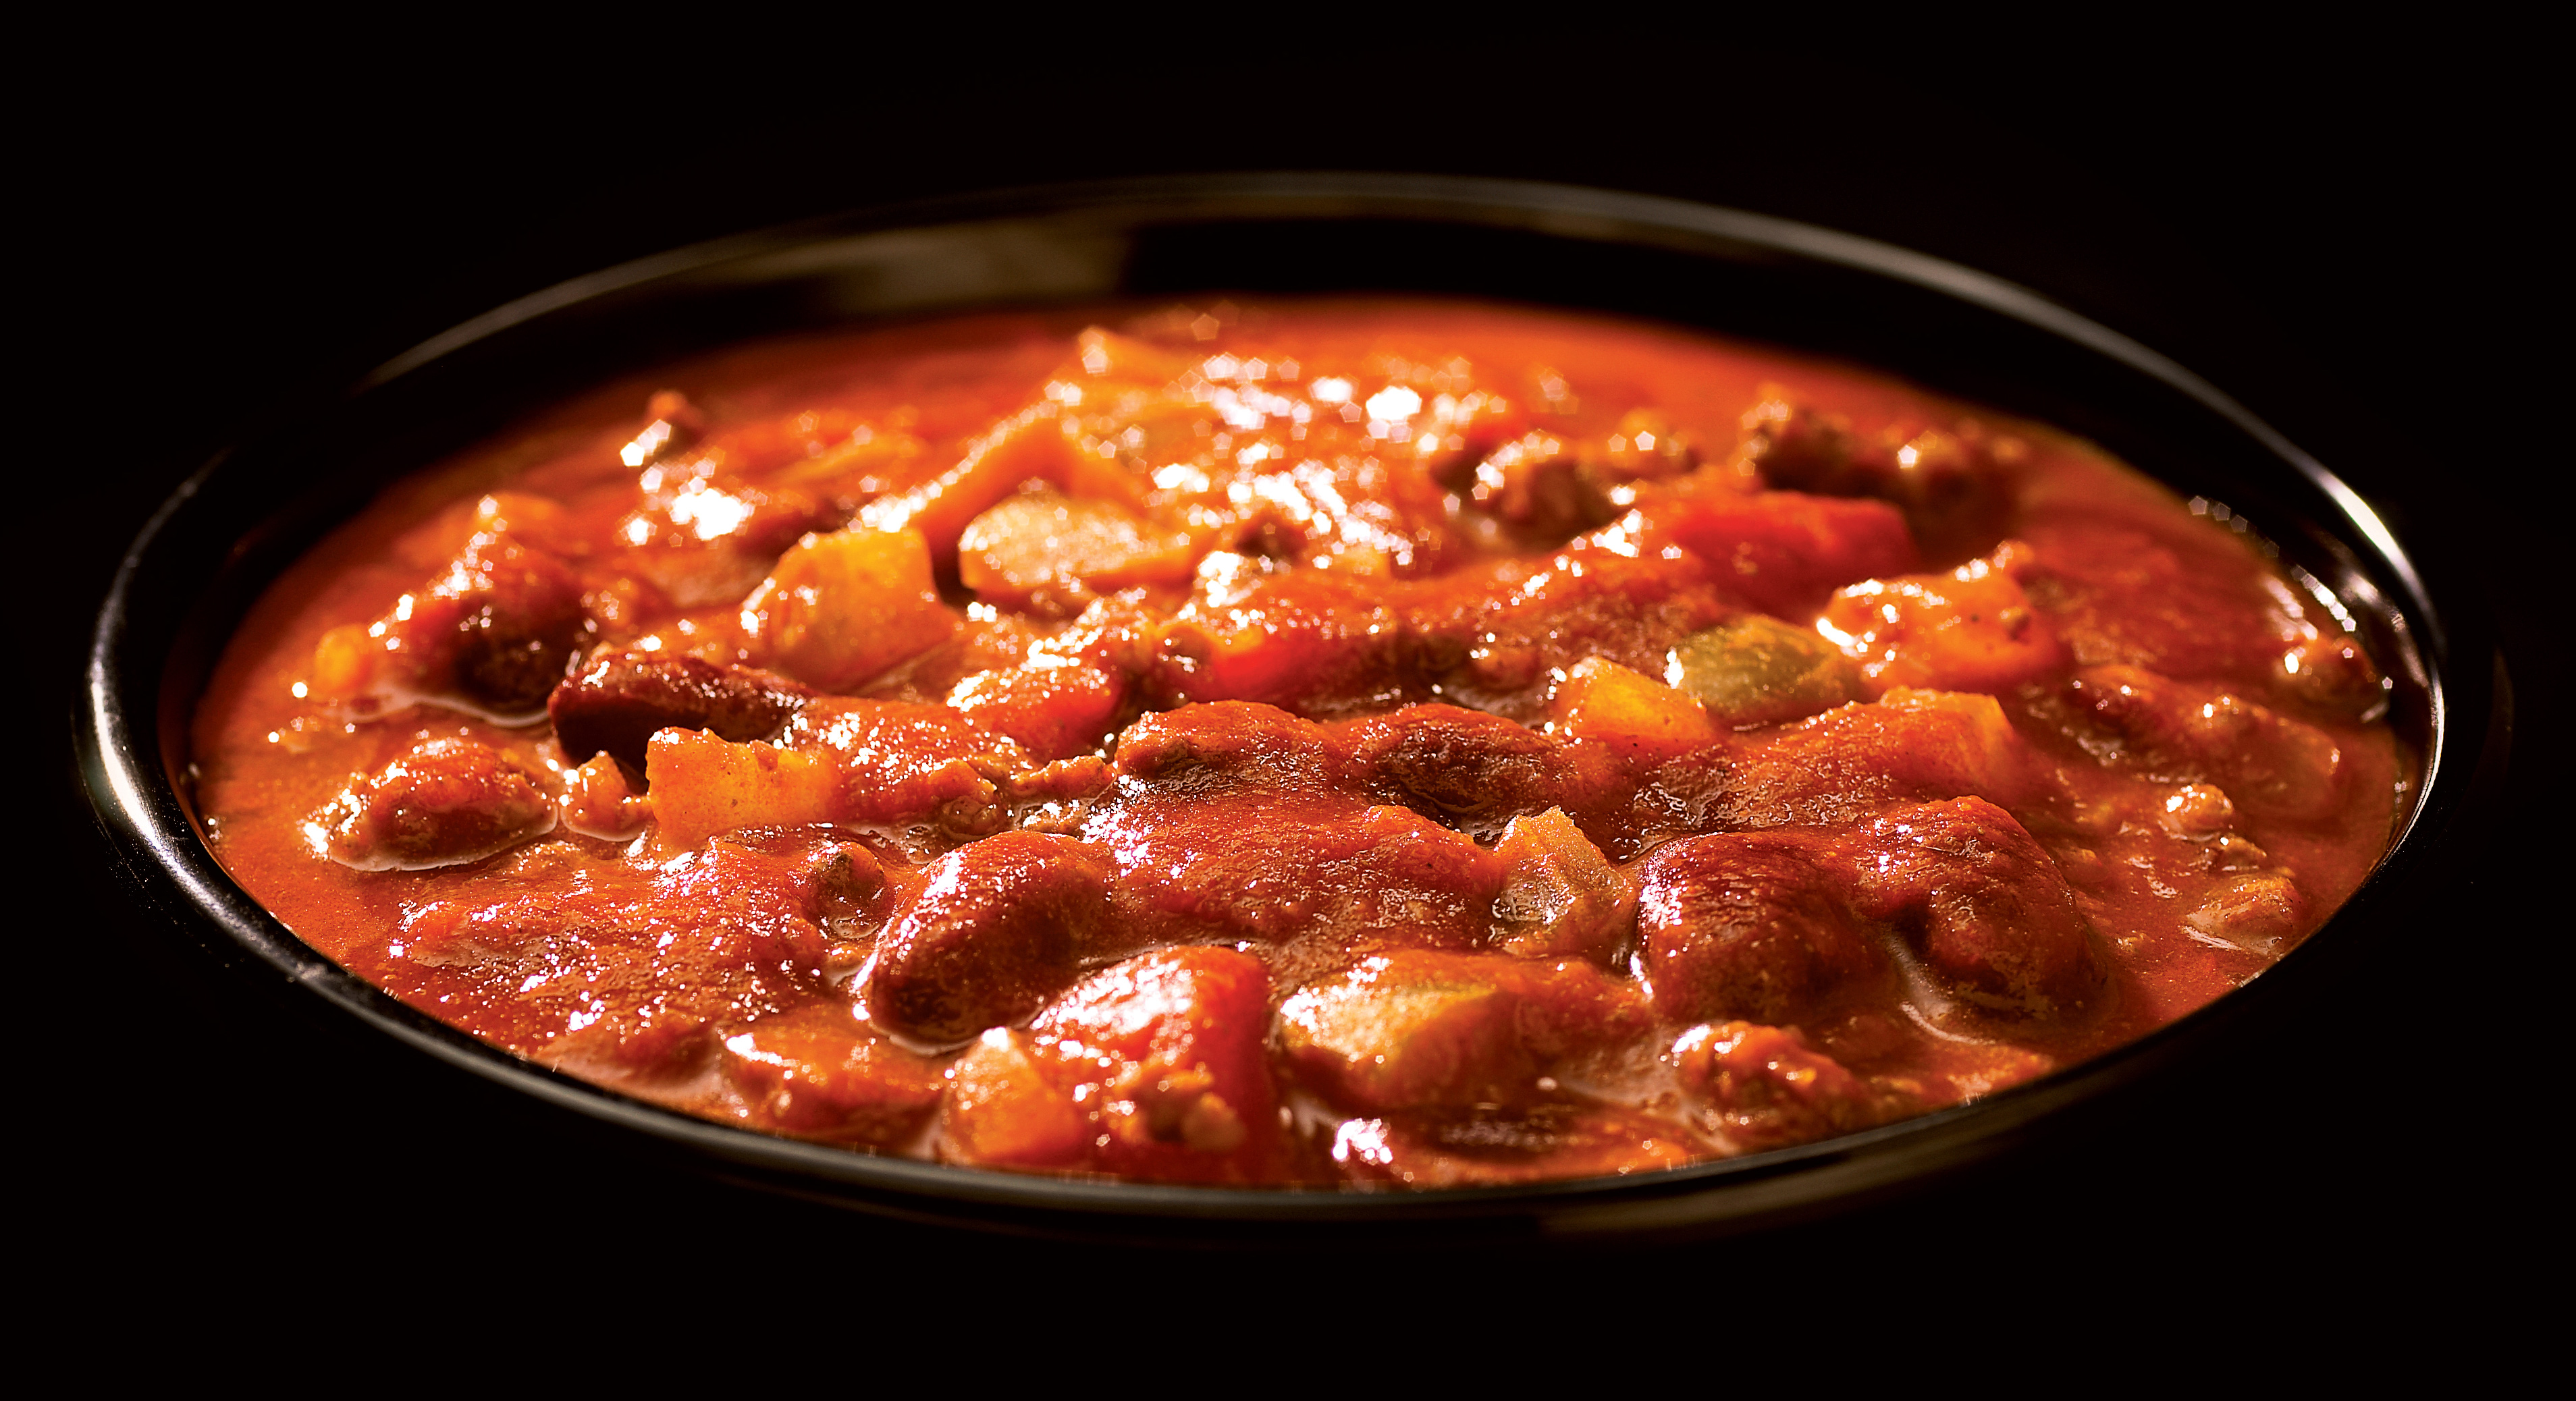 Chili with Beans Soup